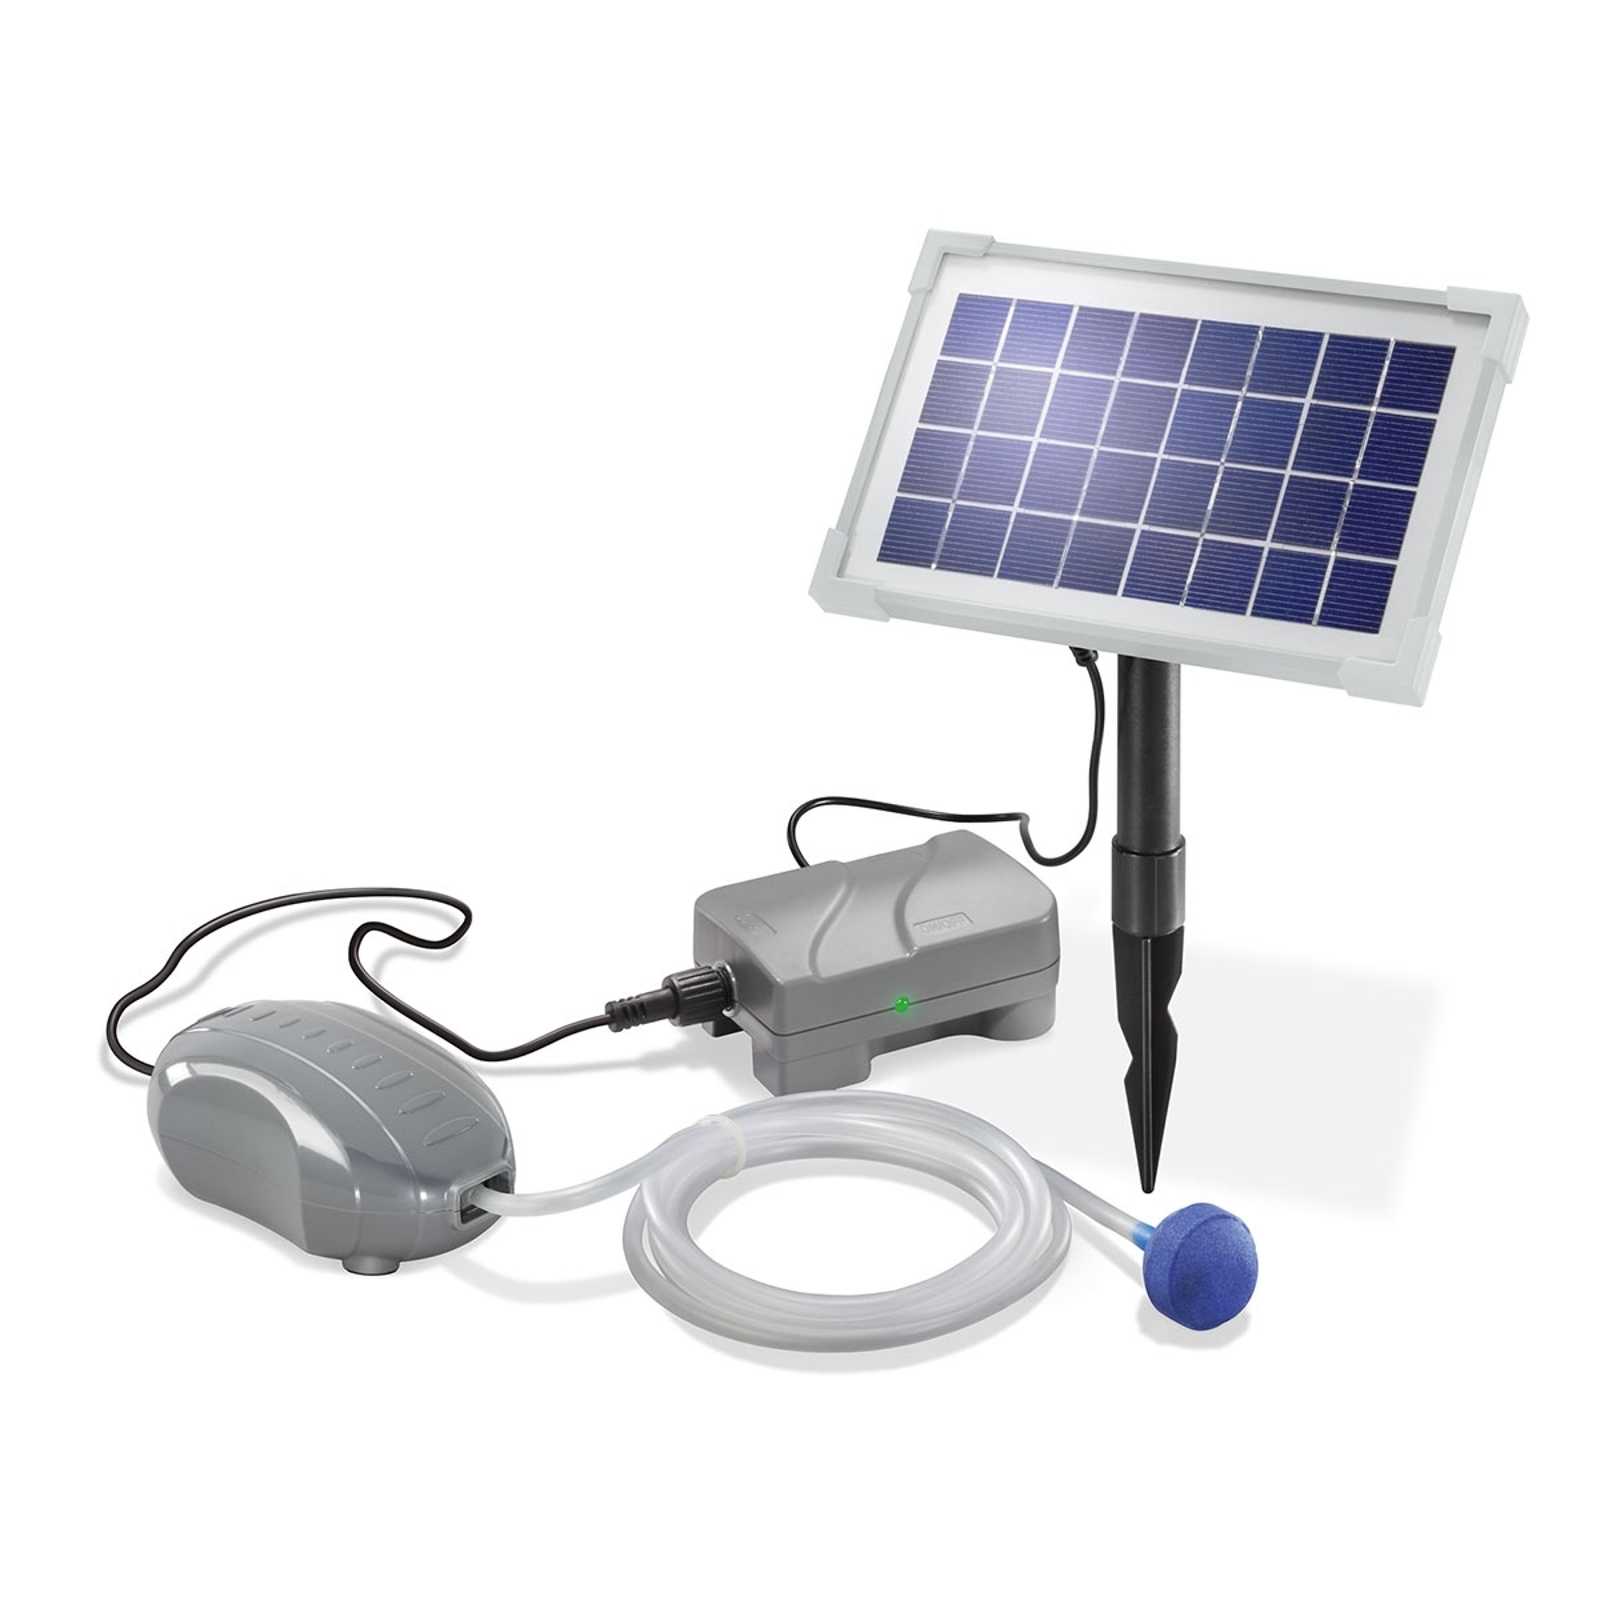 Teichbelüfter Solar Air-Plus